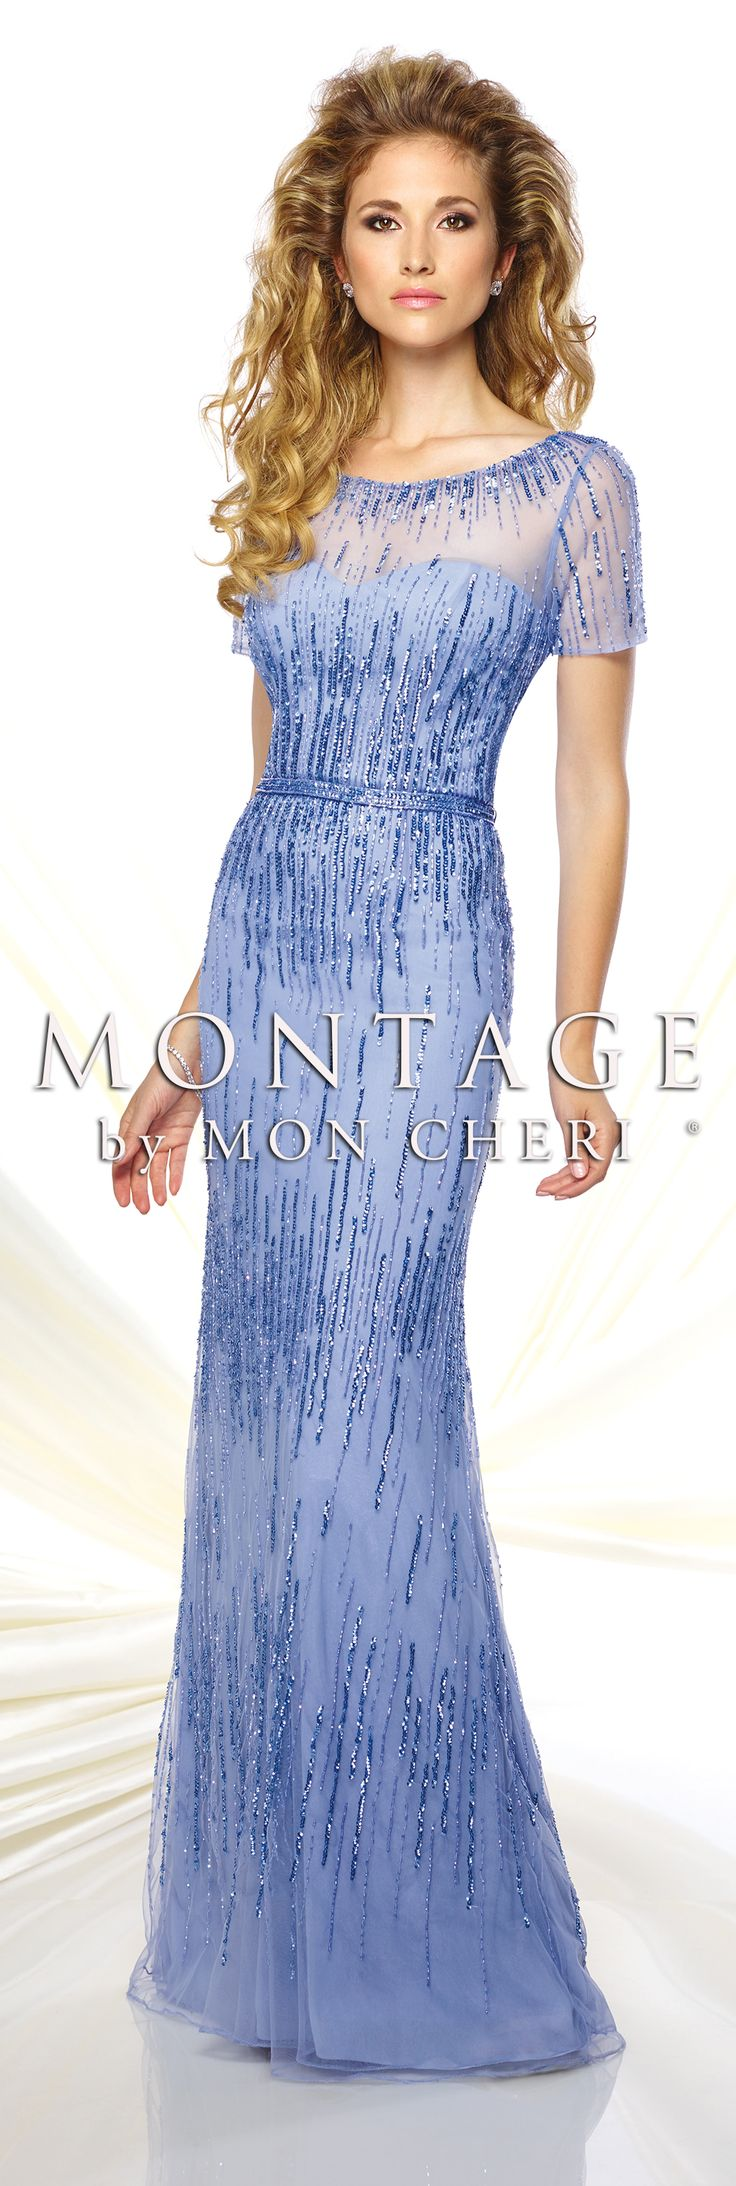 Montage by Mon Cheri Spring 2016 - Style No. 116933 #eveninggowns